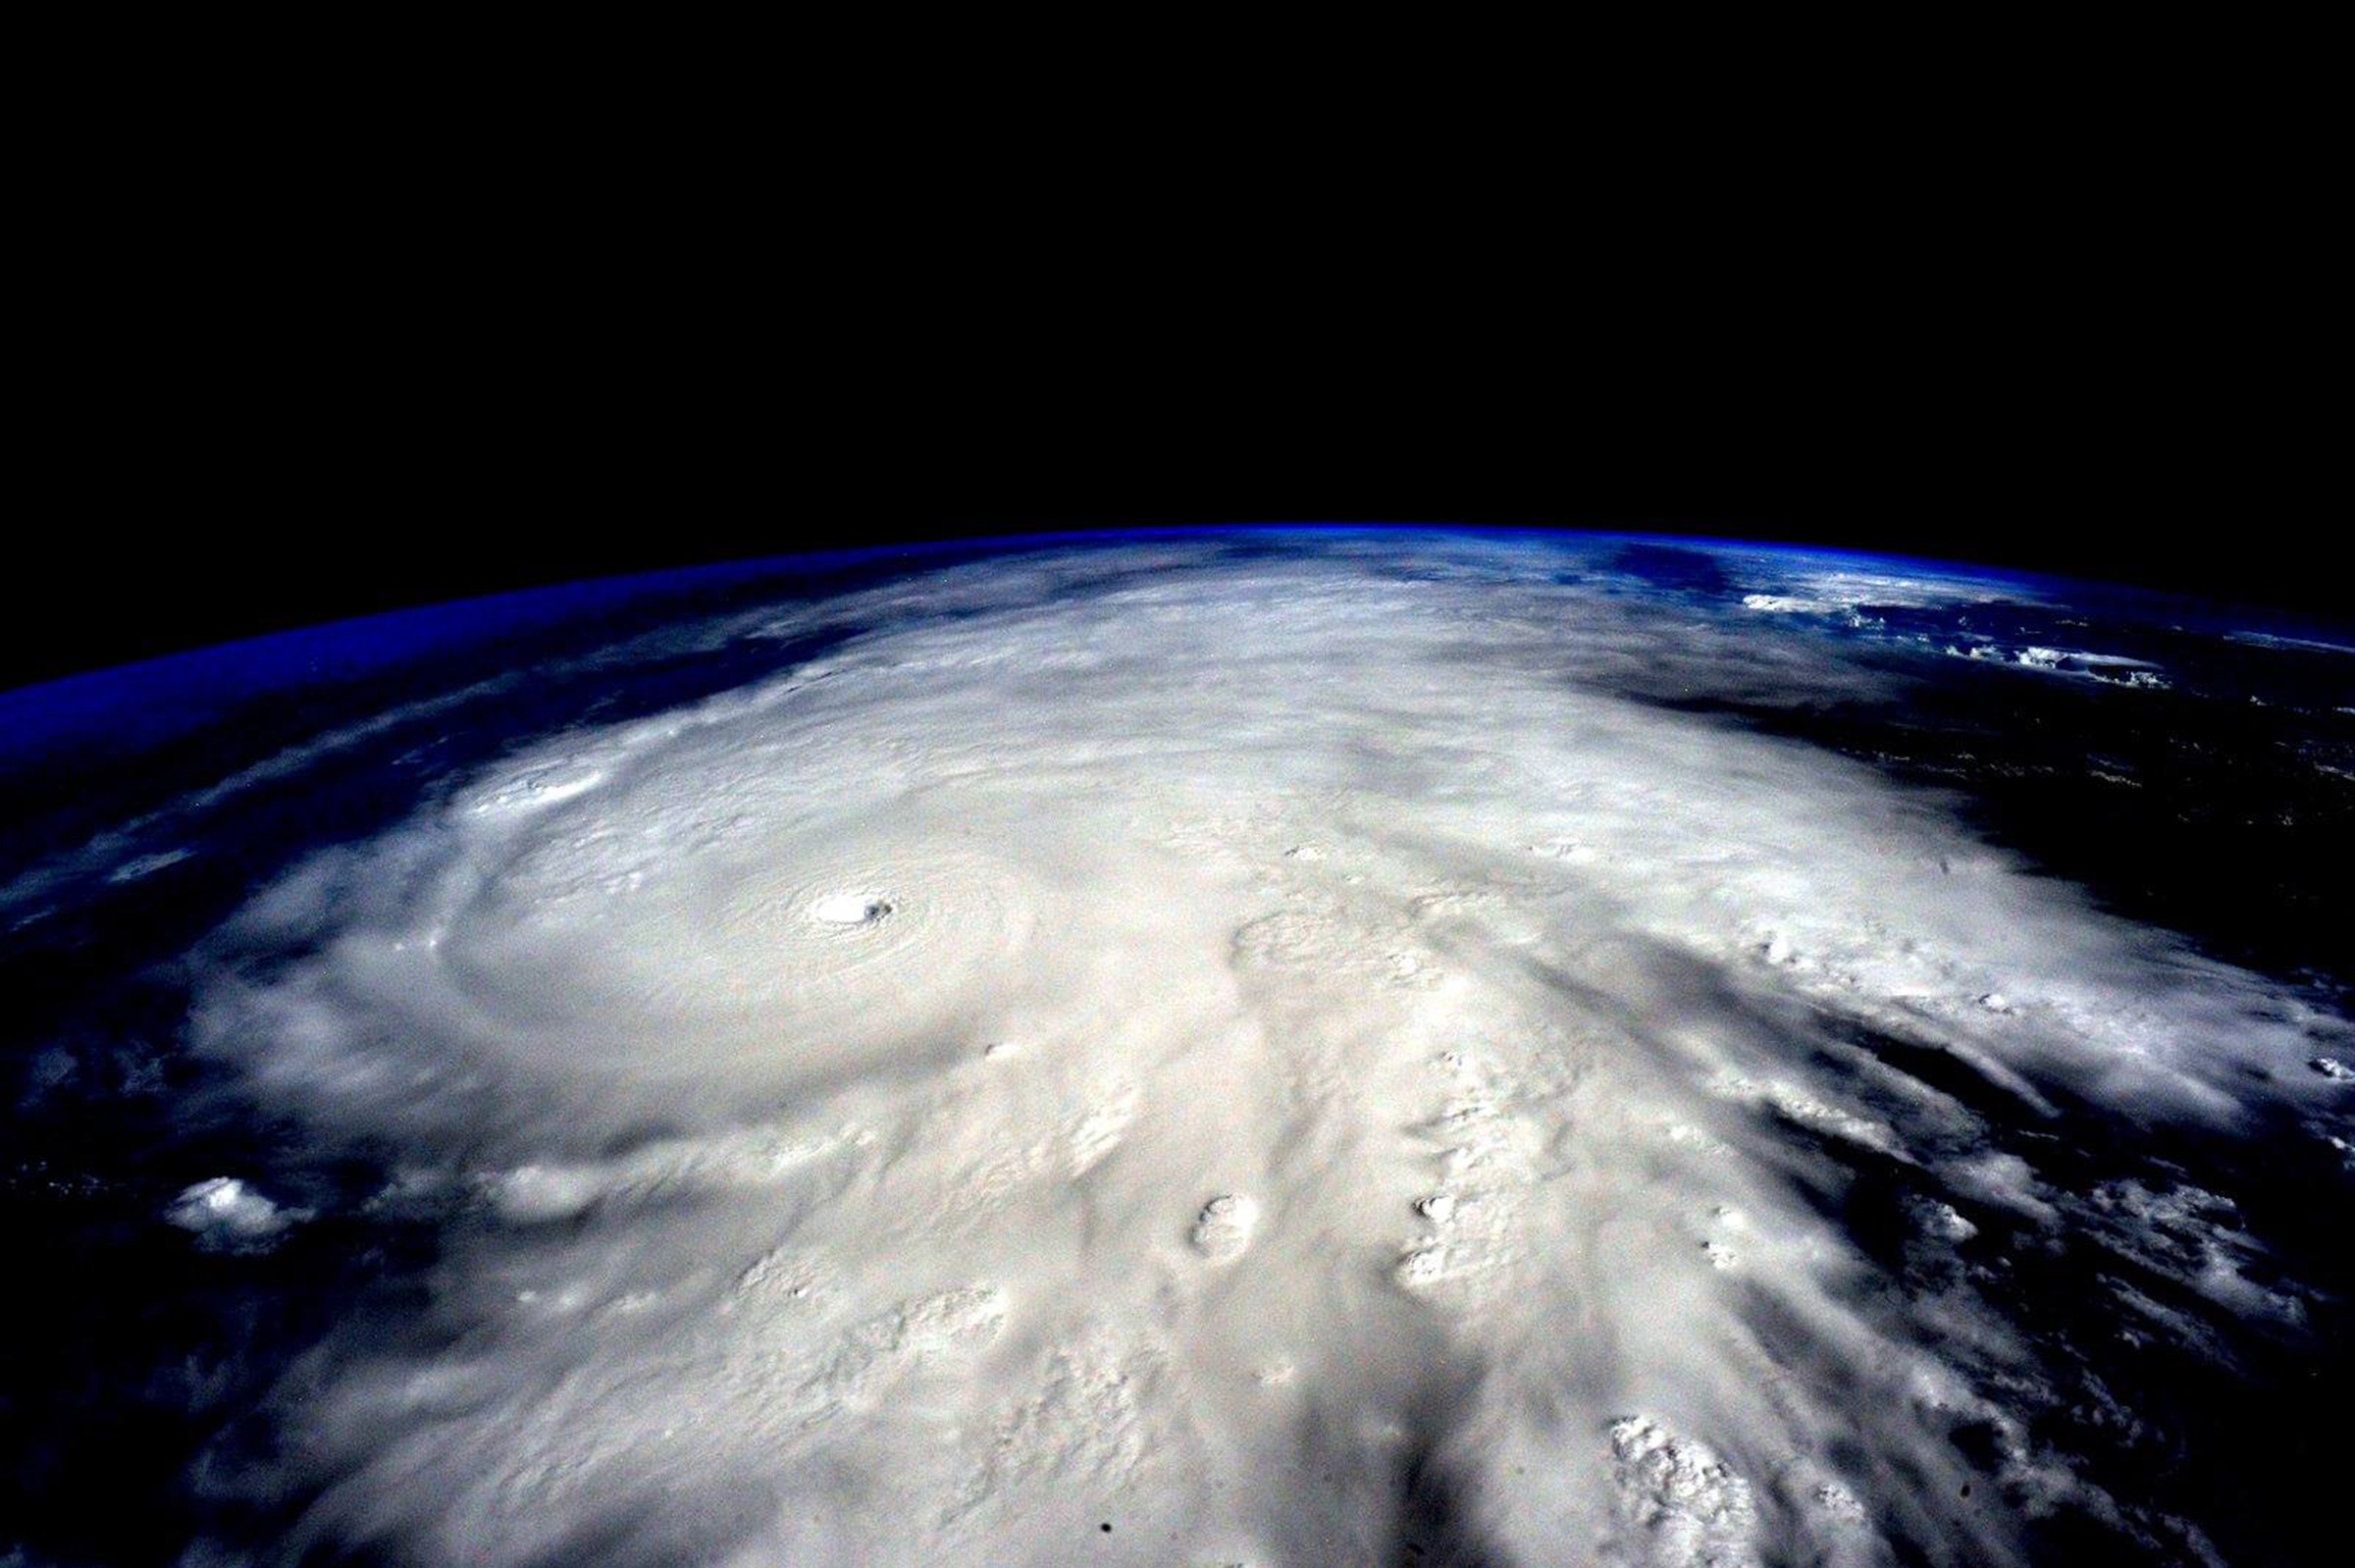 Hurricane Patricia is seen from the International Space Station. The hurricane made landfall on the Pacfic coast of Mexico on Oct. 23, 2015.